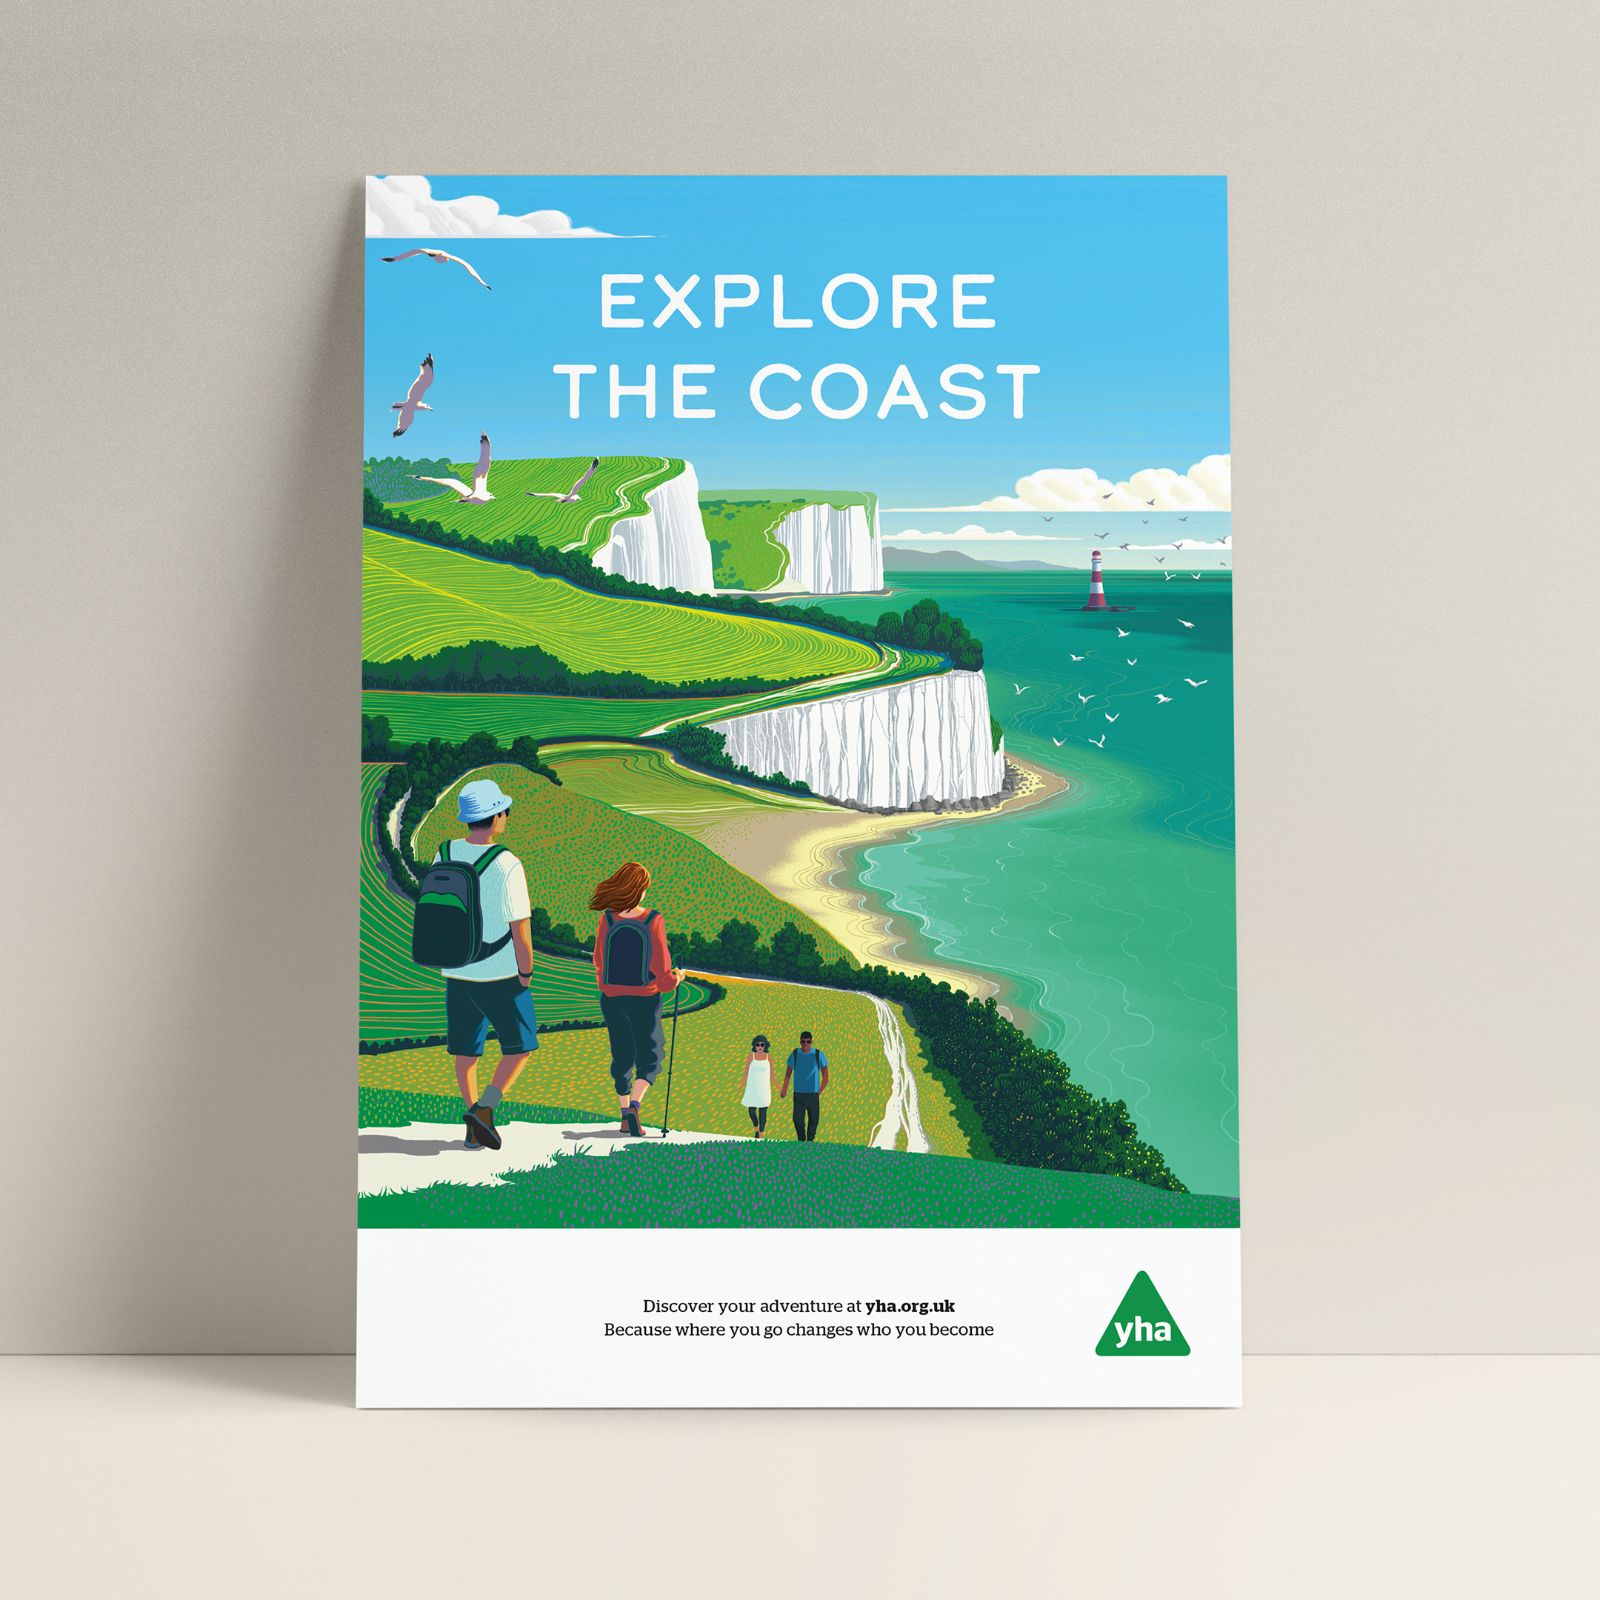 New Poster Series for The YHA